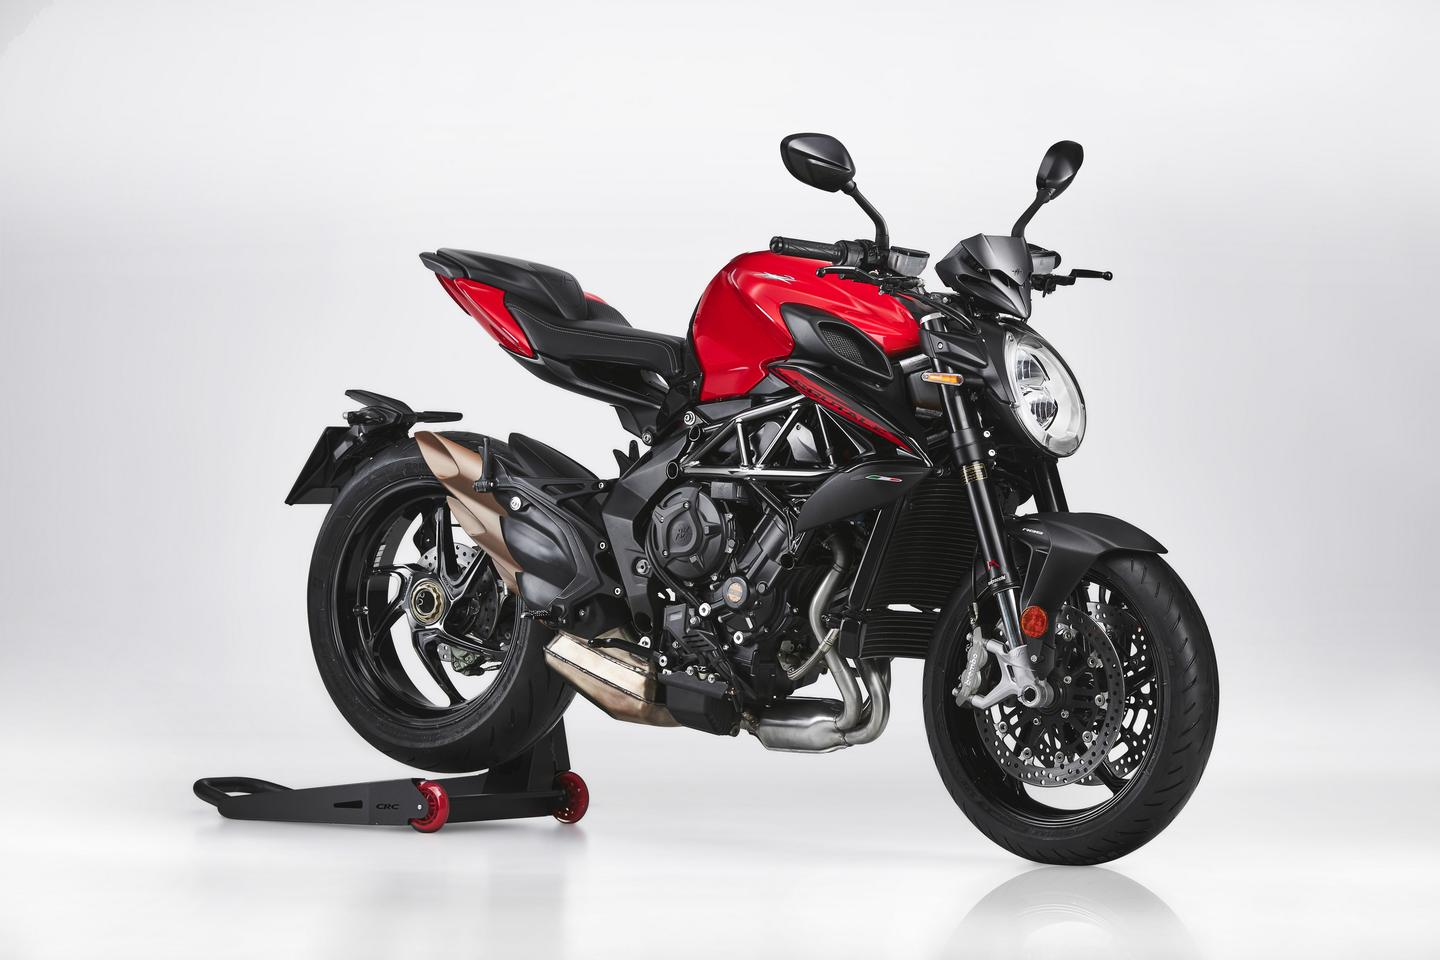 The Rosso the most affordable of the 2021 MV Agusta Brutale family